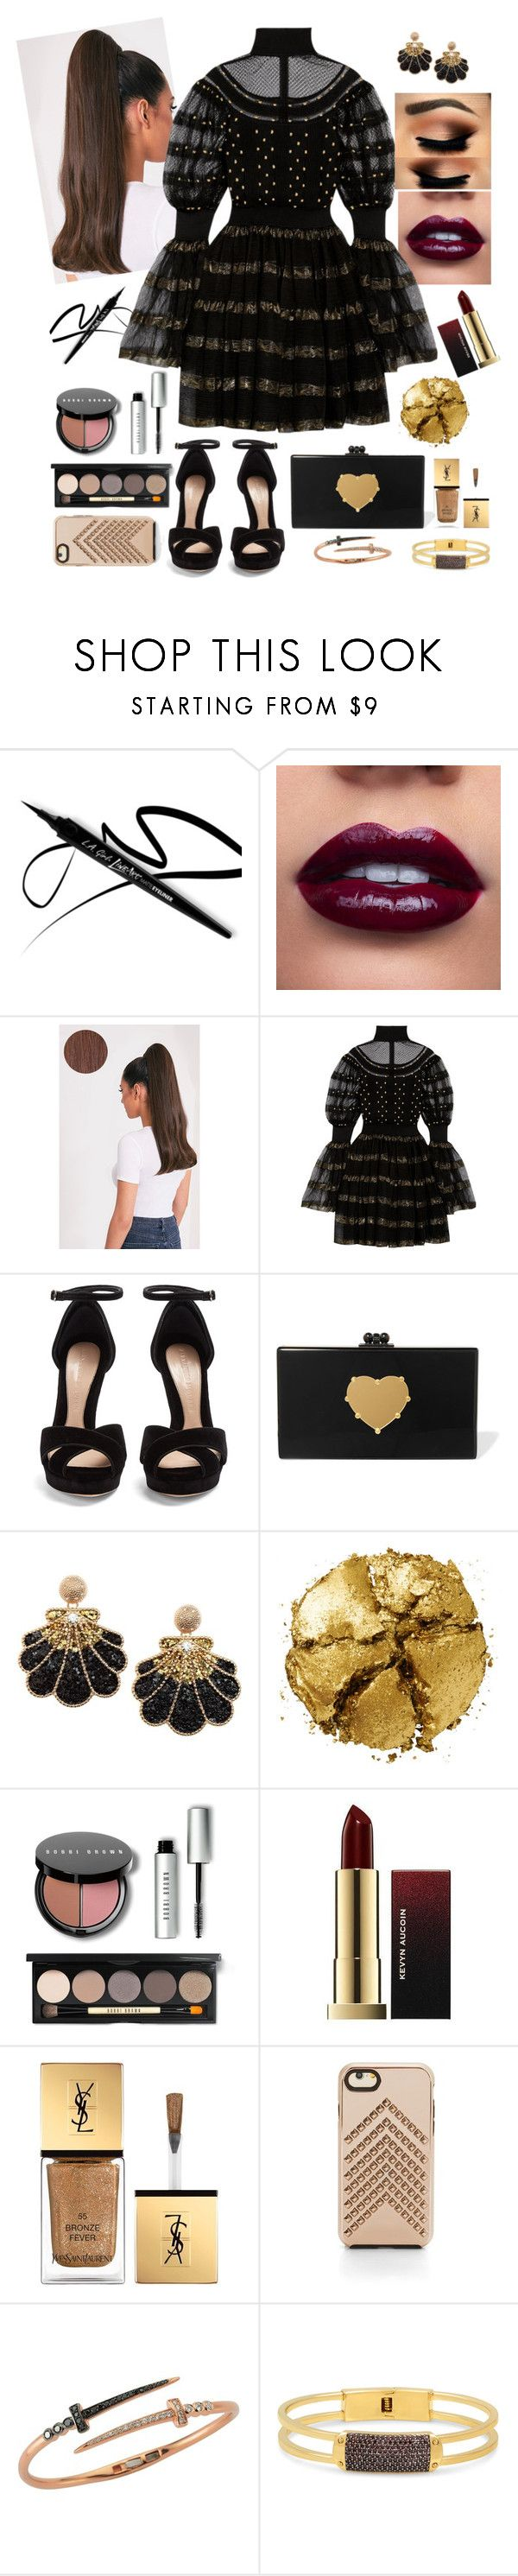 """Без названия #179"" by shpurikova ❤ liked on Polyvore featuring Alexander McQueen, Edie Parker, Pat McGrath, Bobbi Brown Cosmetics, Yves Saint Laurent, Rebecca Minkoff, Bee Goddess and Henri Bendel"